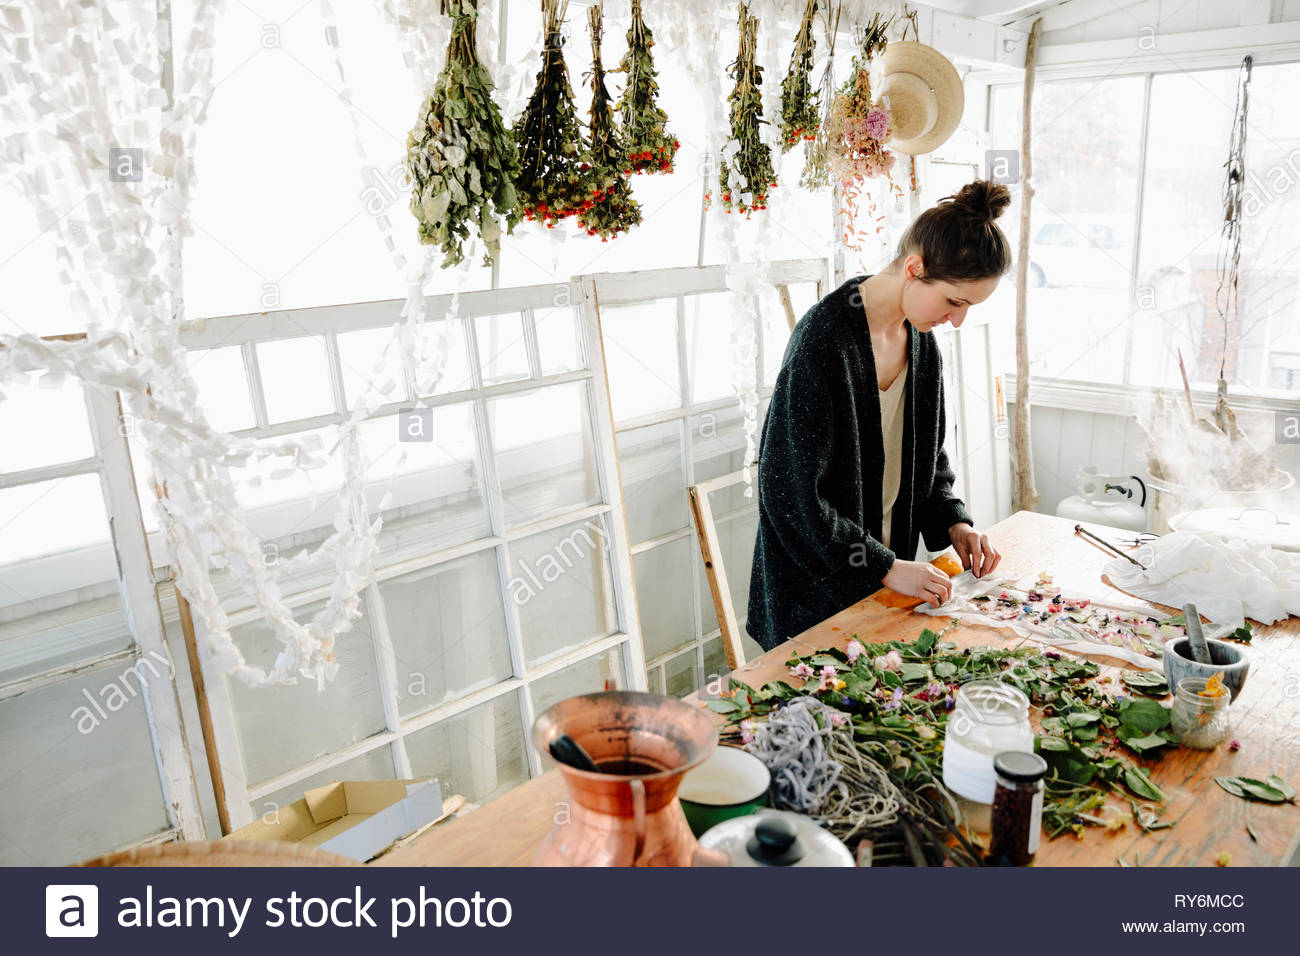 Female artist rolling dried flowers for paper making - Stock Image